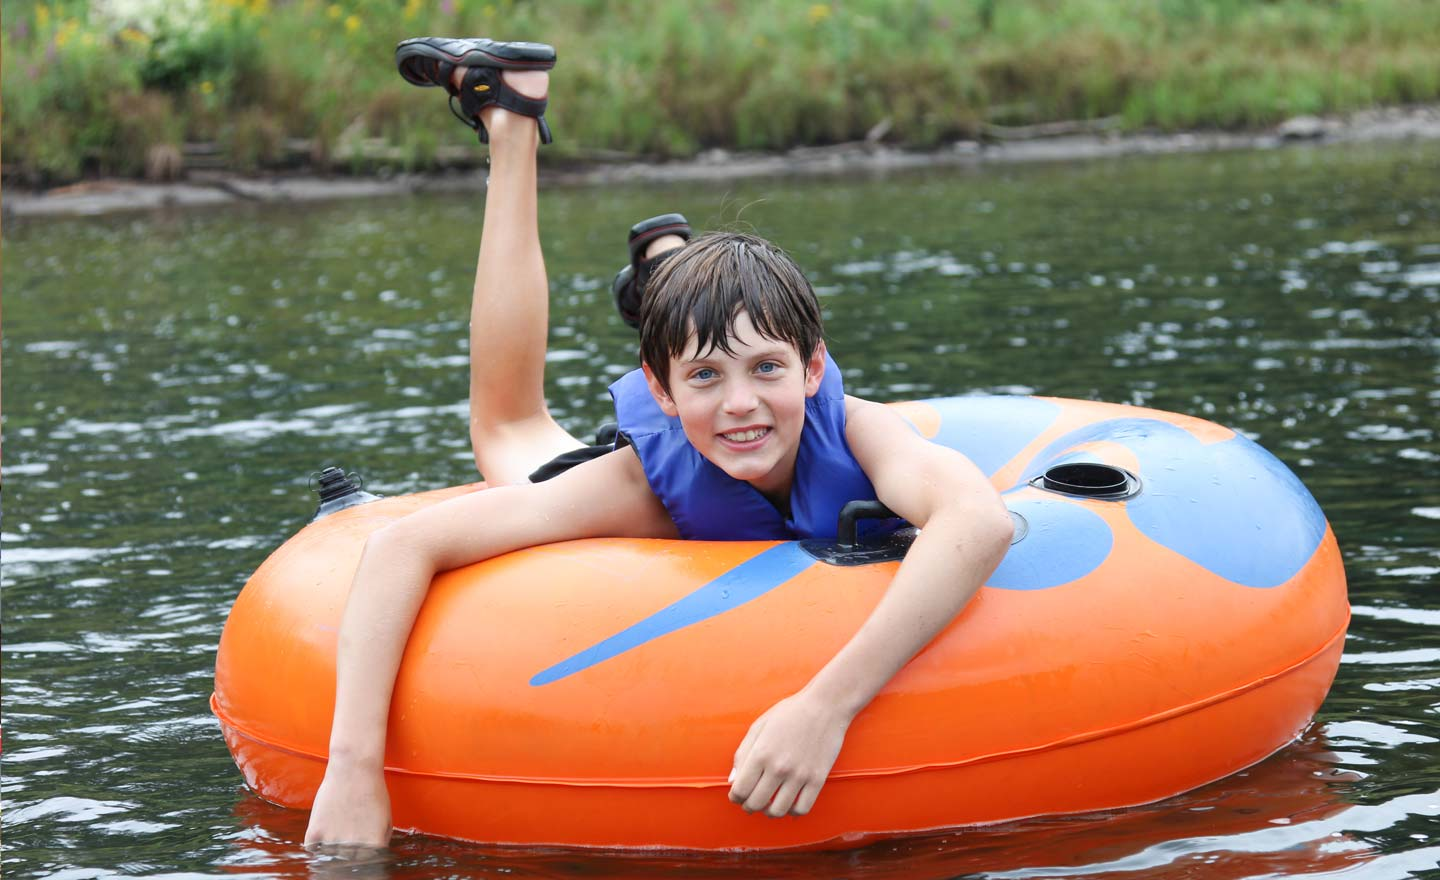 young boy smiling in tube on river Indian Head Canoeing Rafting Kayaking Tubing Delaware River